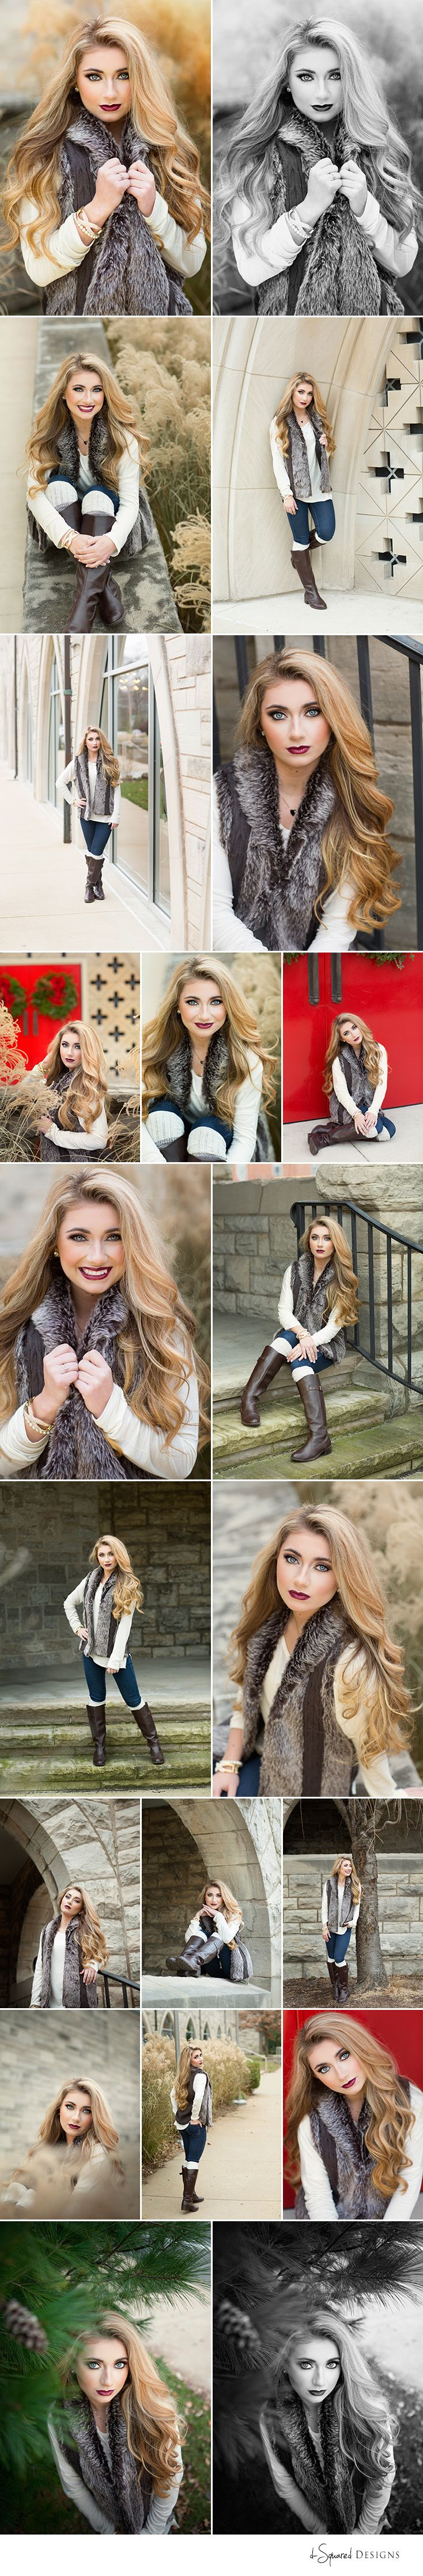 d-Squared Designs St. Louis, MO Senior Photography. Winter Senior photography. Winter session. Gorgeous. Fur fashion. Style.